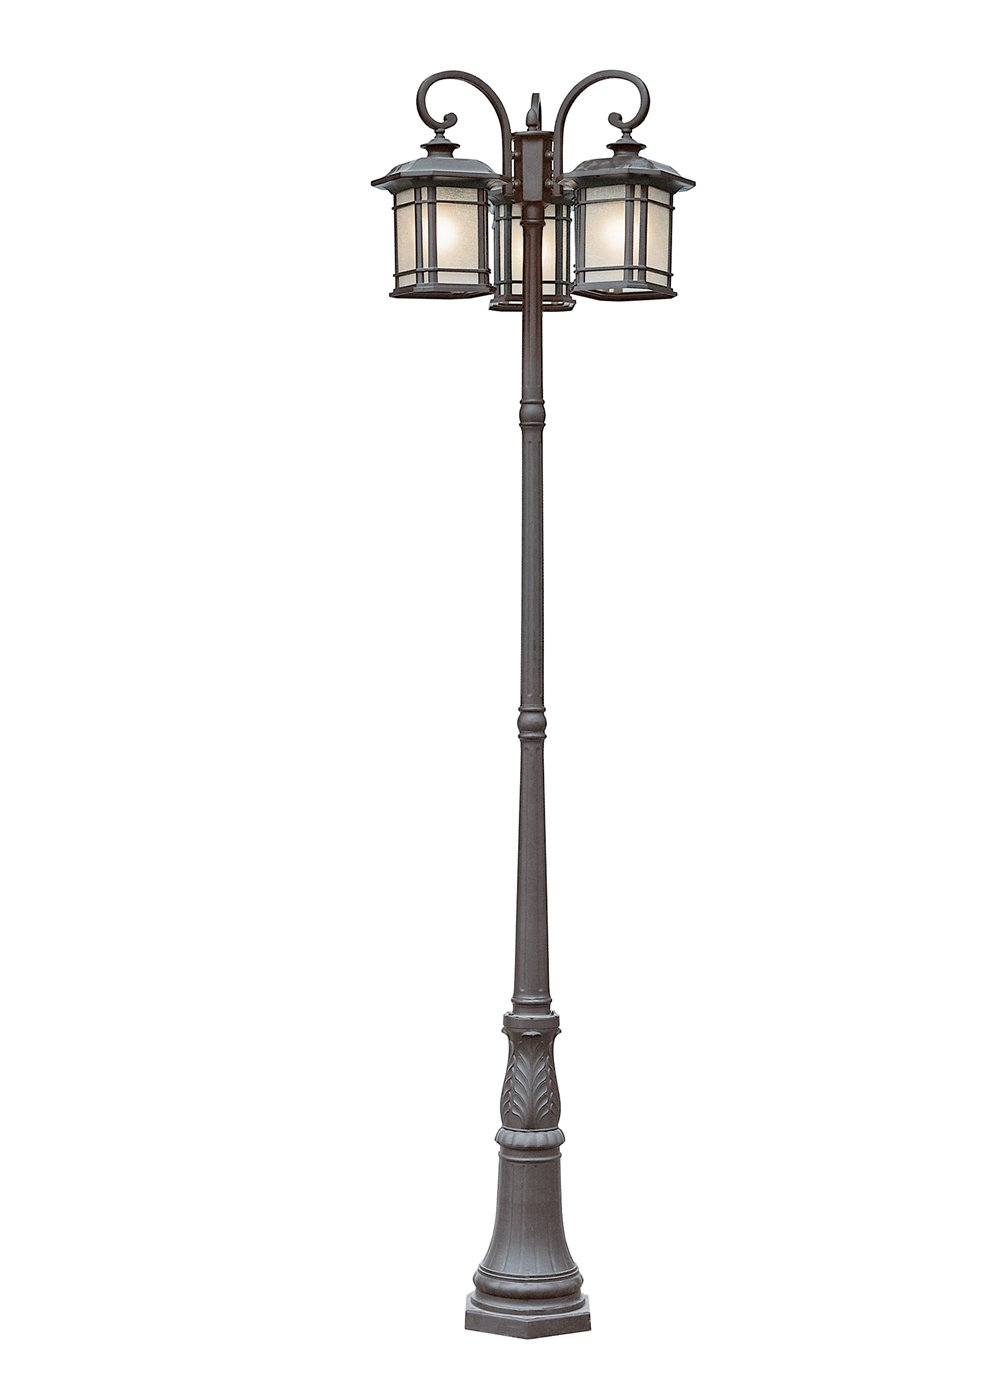 Amazon Com Trans Globe Lighting Pl 5827 Rt Outdoor San Miguel 99 5 Pole Light Rust Mission Post Lantern Patio Lawn Garden